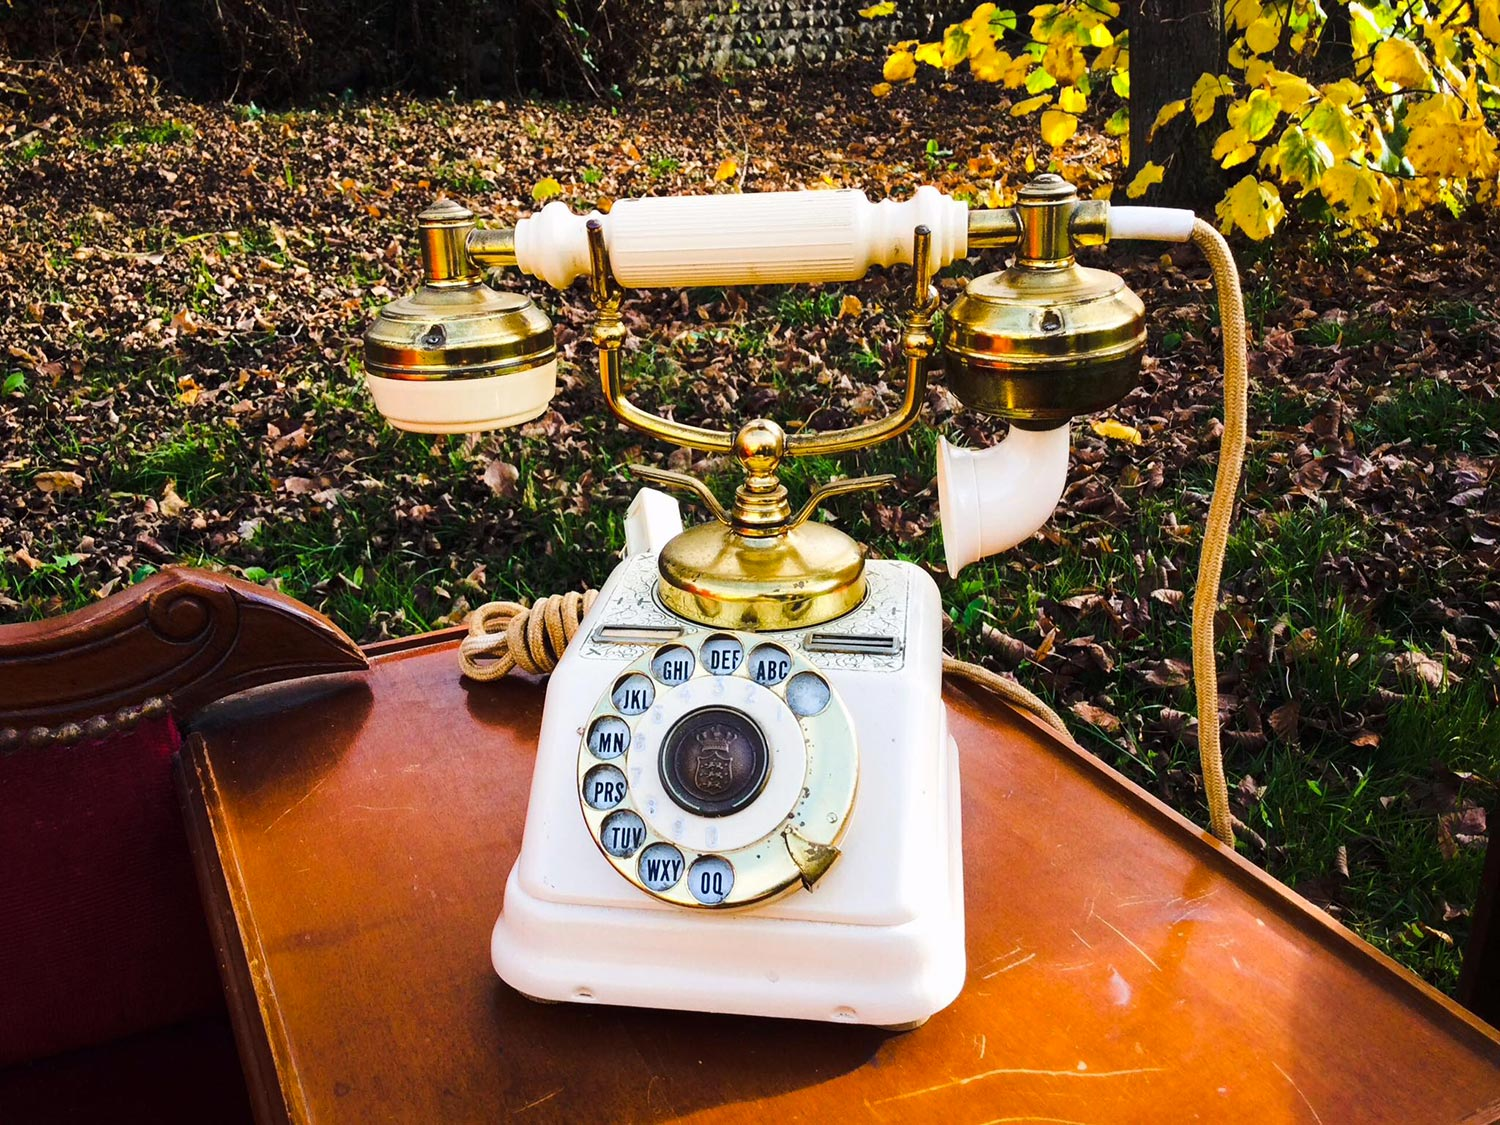 Couvert-et-compagnie-Telephone